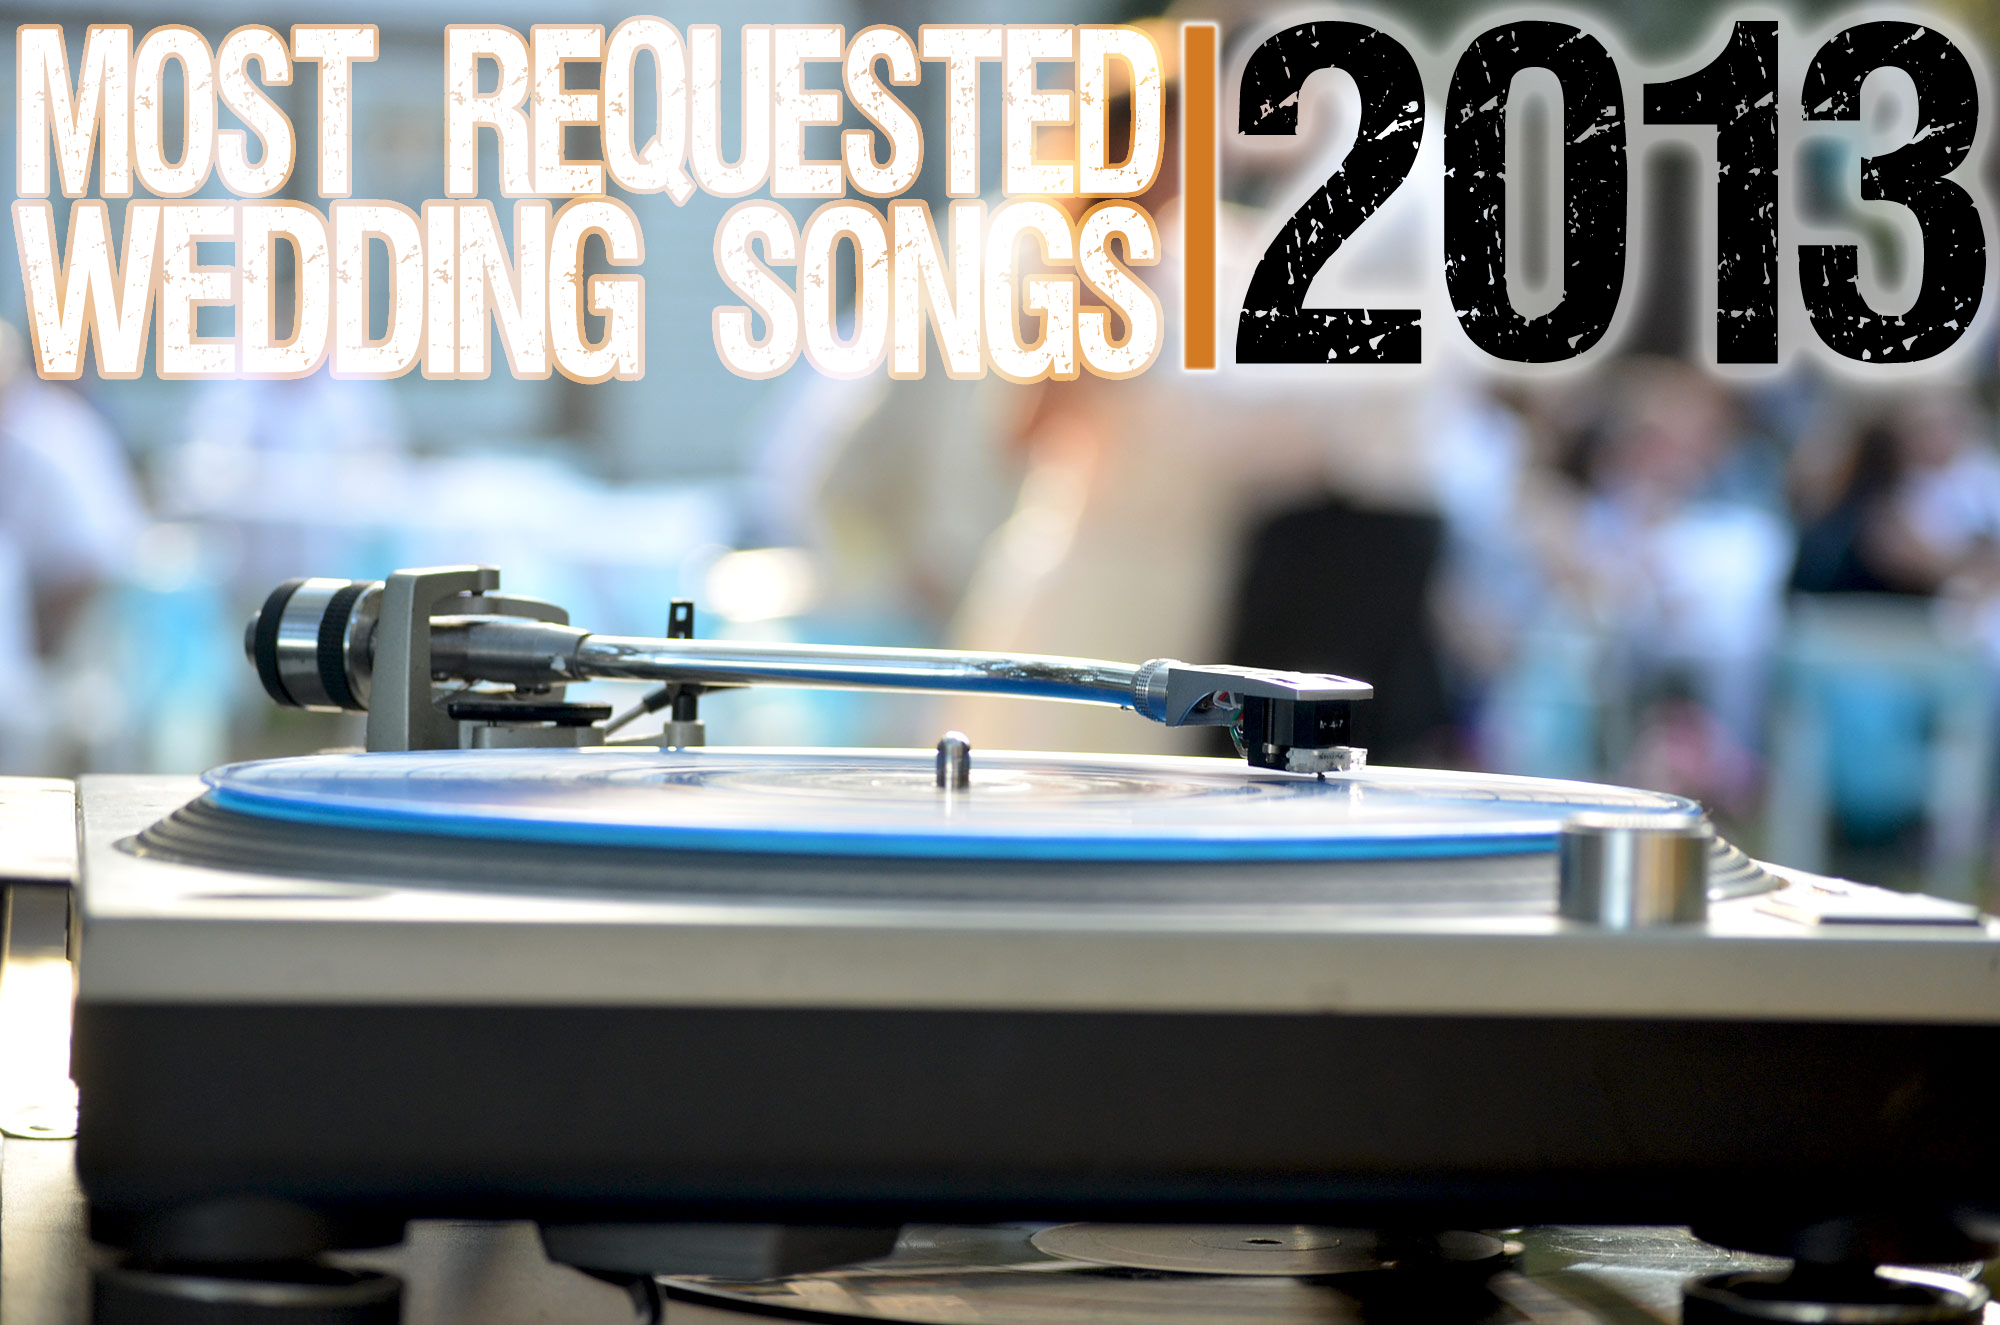 Best Wedding Song Requests Mostrequested